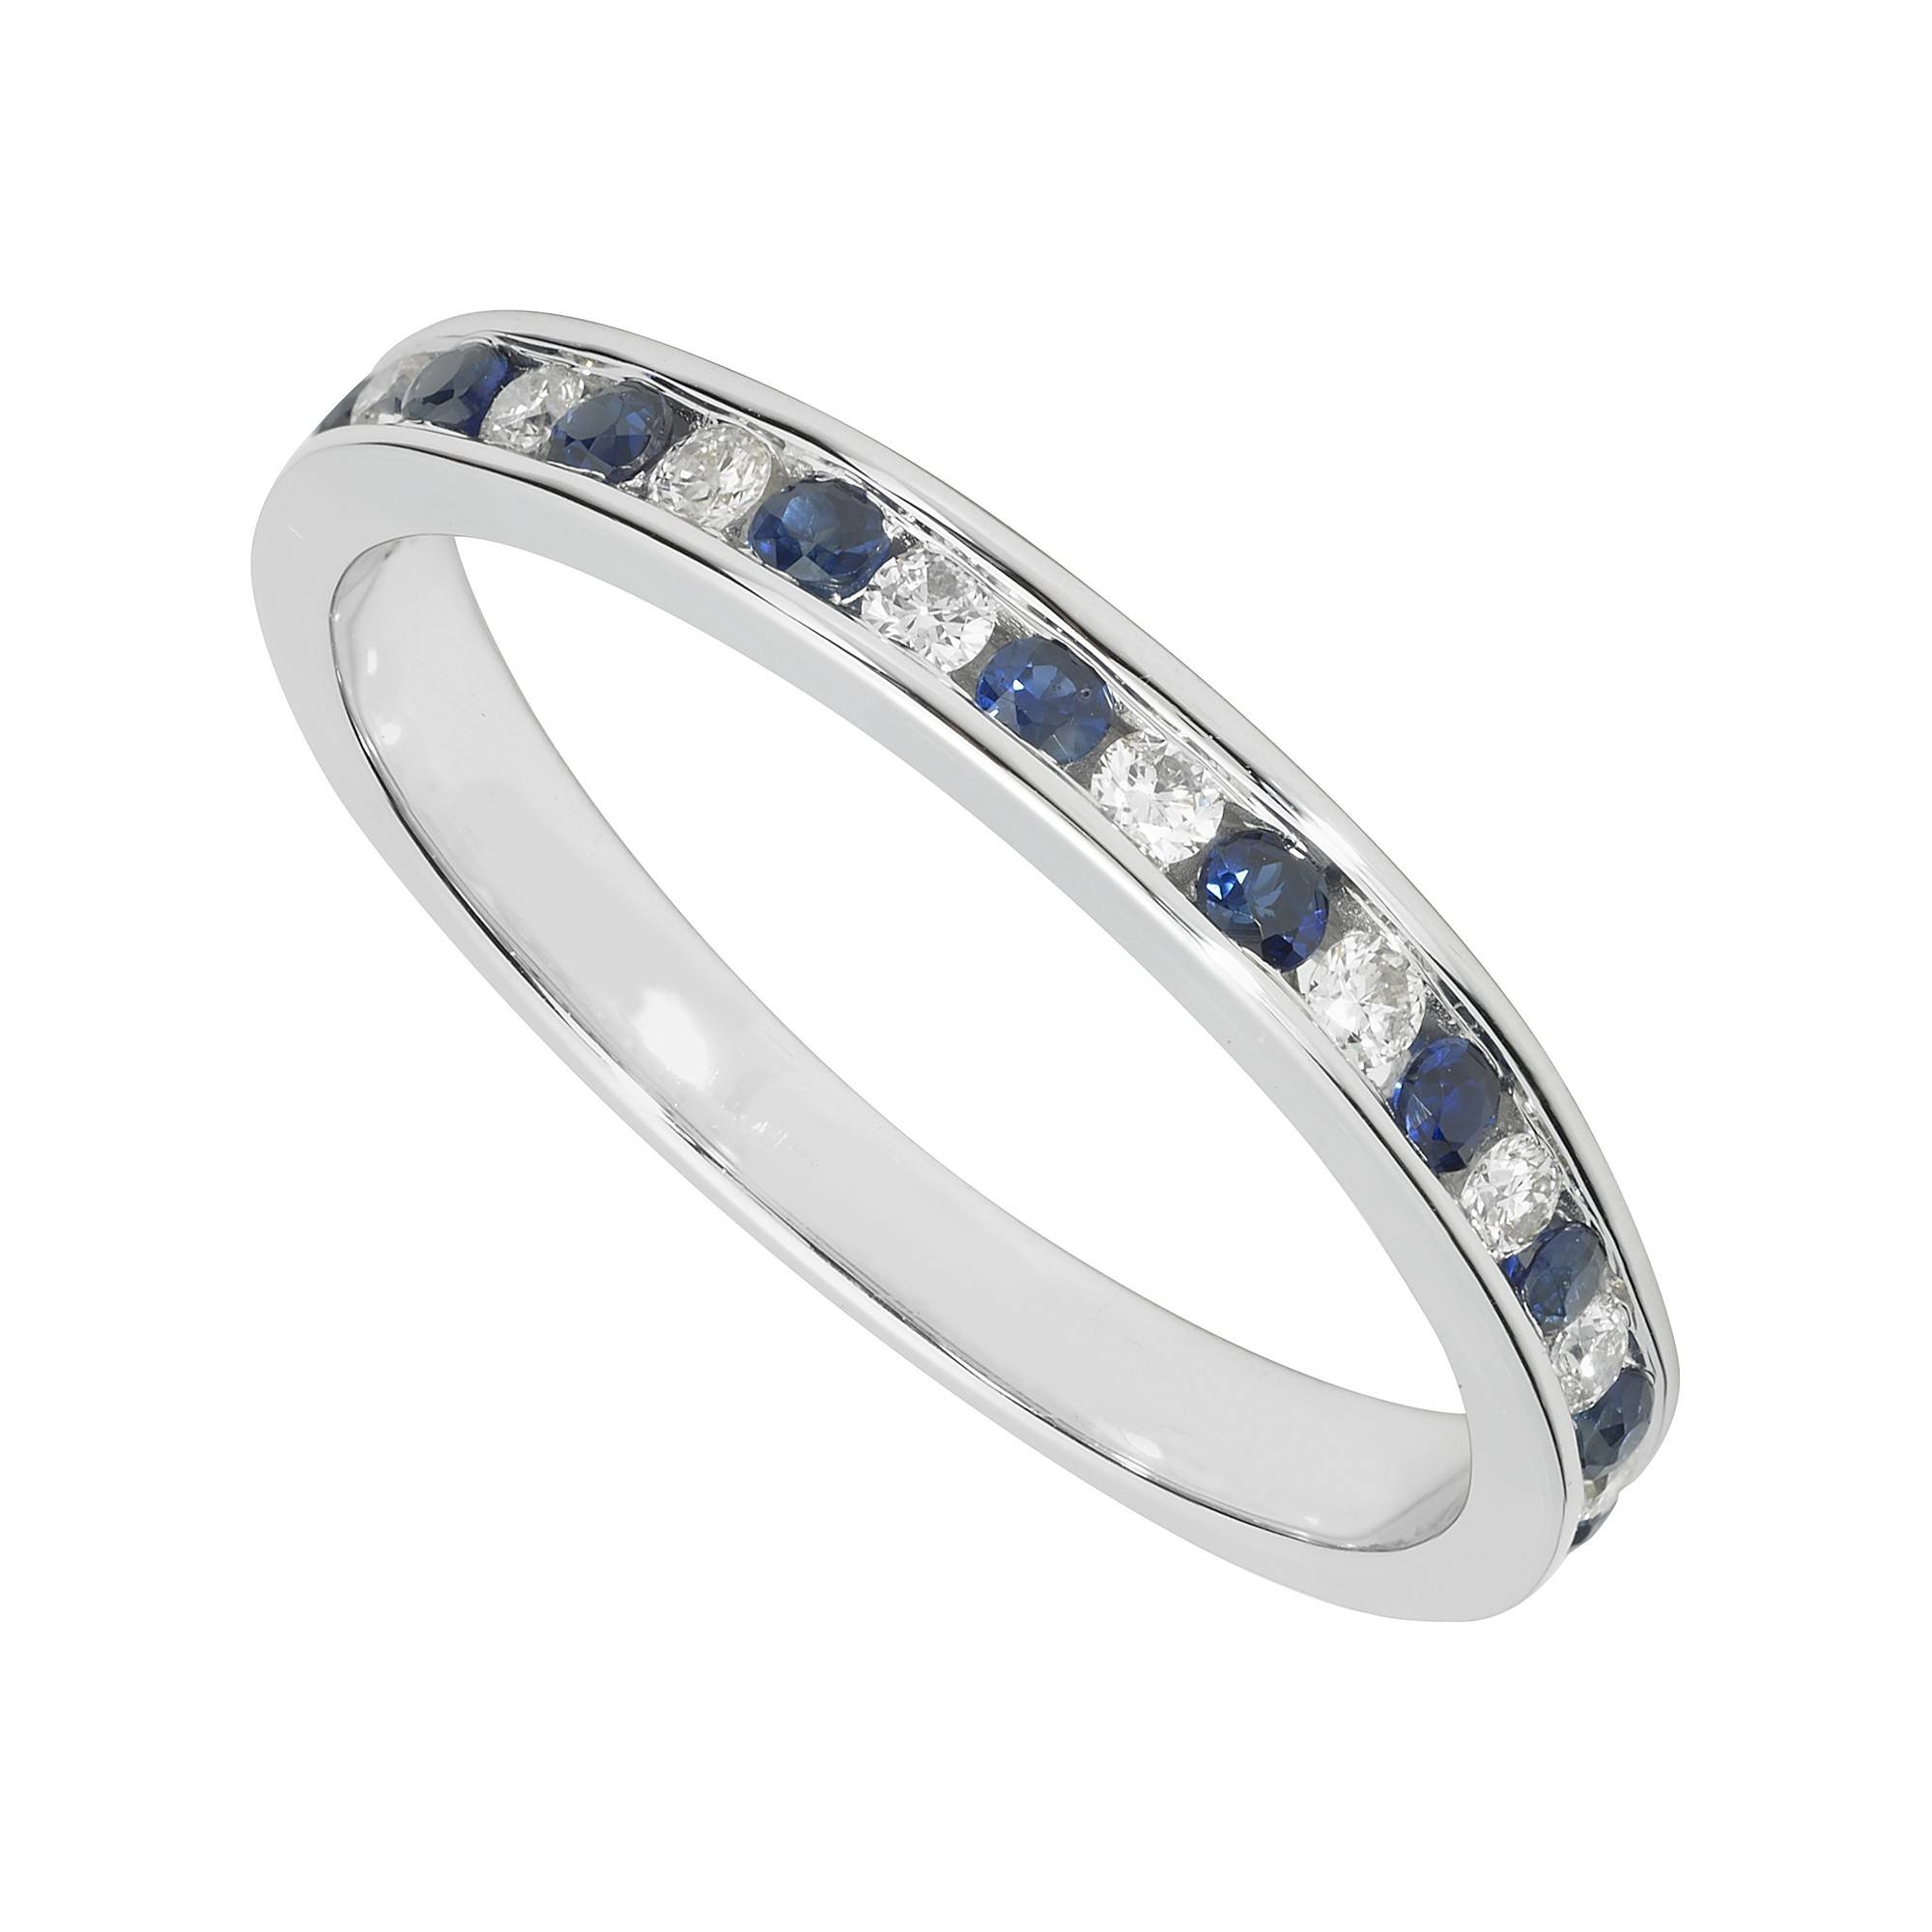 Ladies' 9Ct White Gold Diamond And Sapphire Wedding Ring With Diamond And Sapphire Wedding Rings (Gallery 8 of 15)